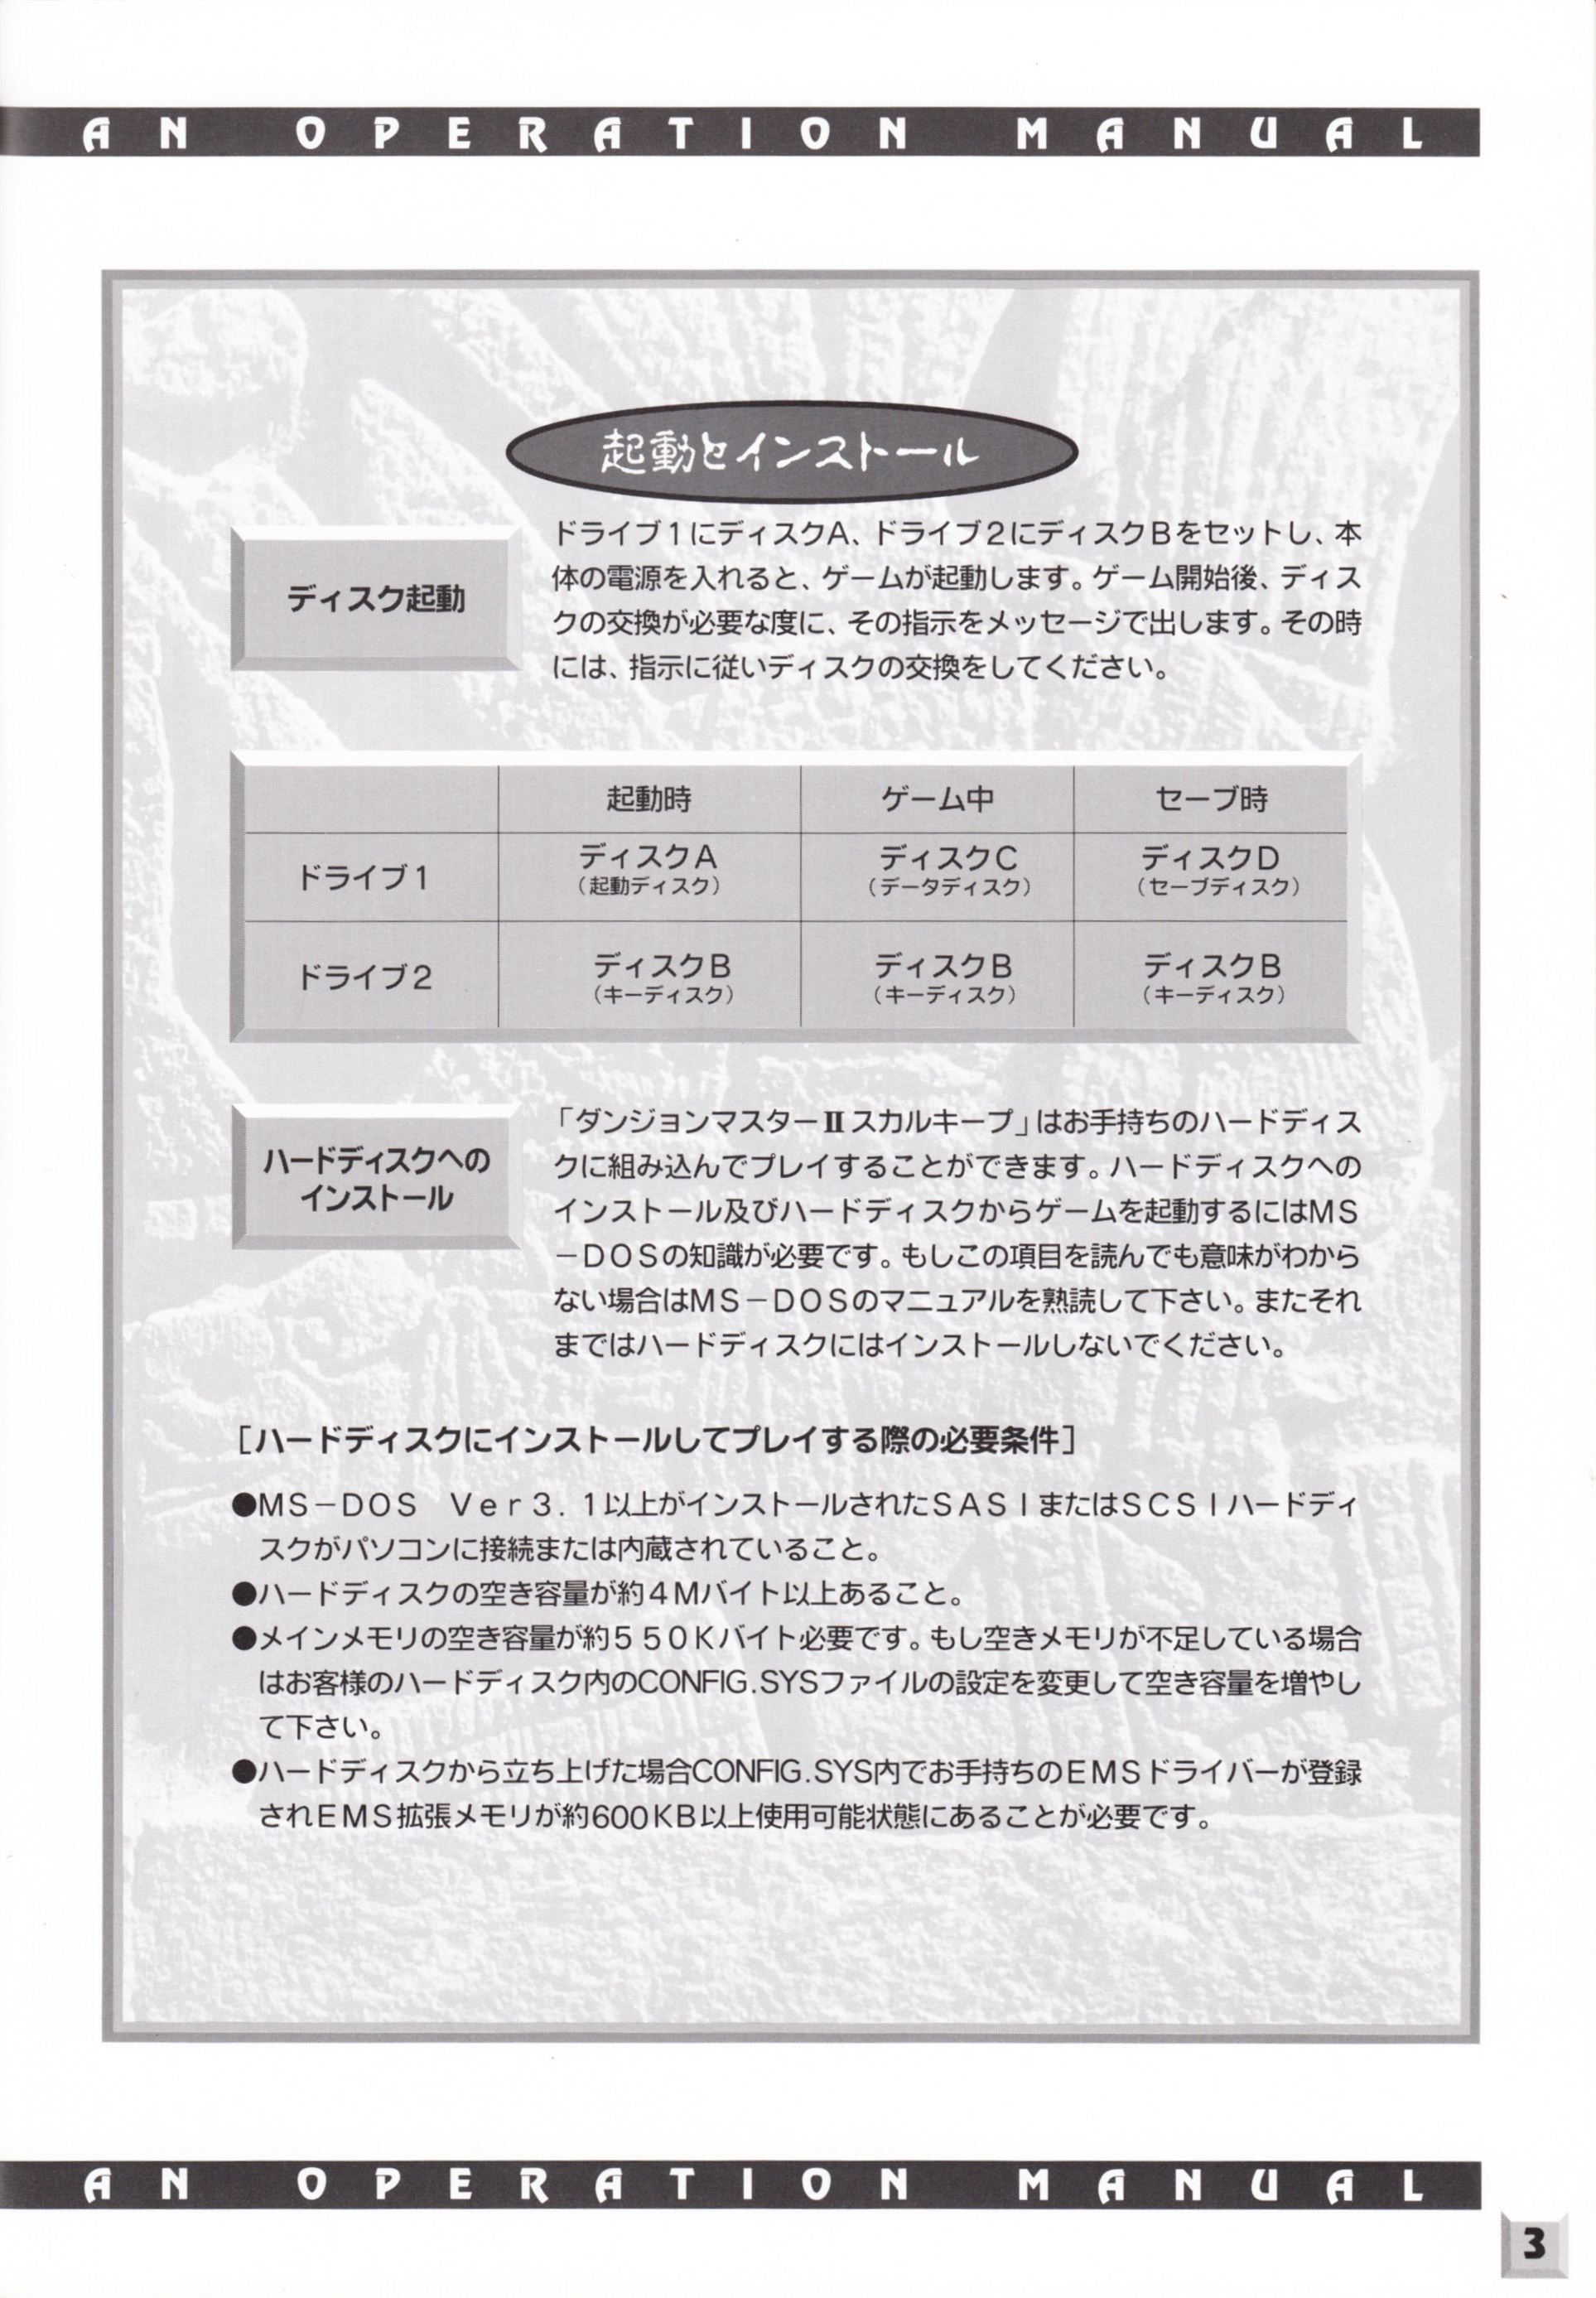 Game - Dungeon Master II - JP - PC-9801 - 3.5-inch - An Operation Manual - Page 005 - Scan